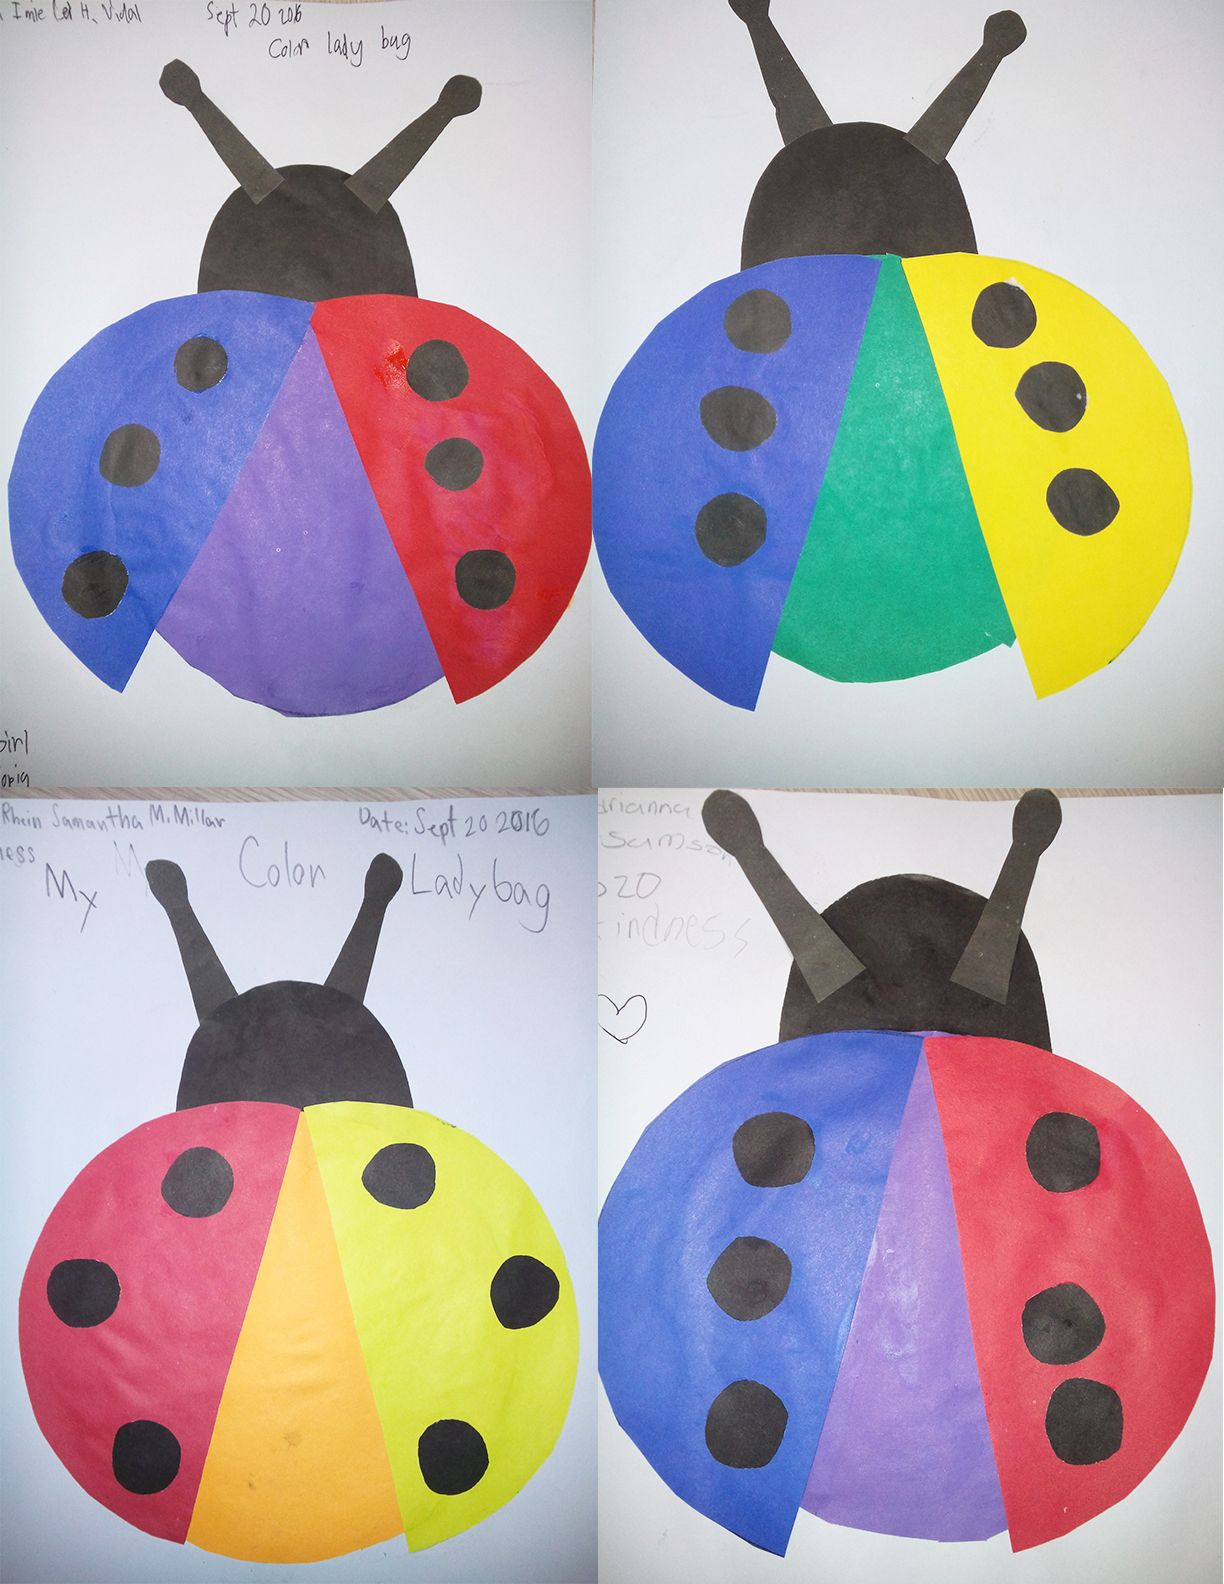 Color Ladybug Covers The Topic Primary And Secondary